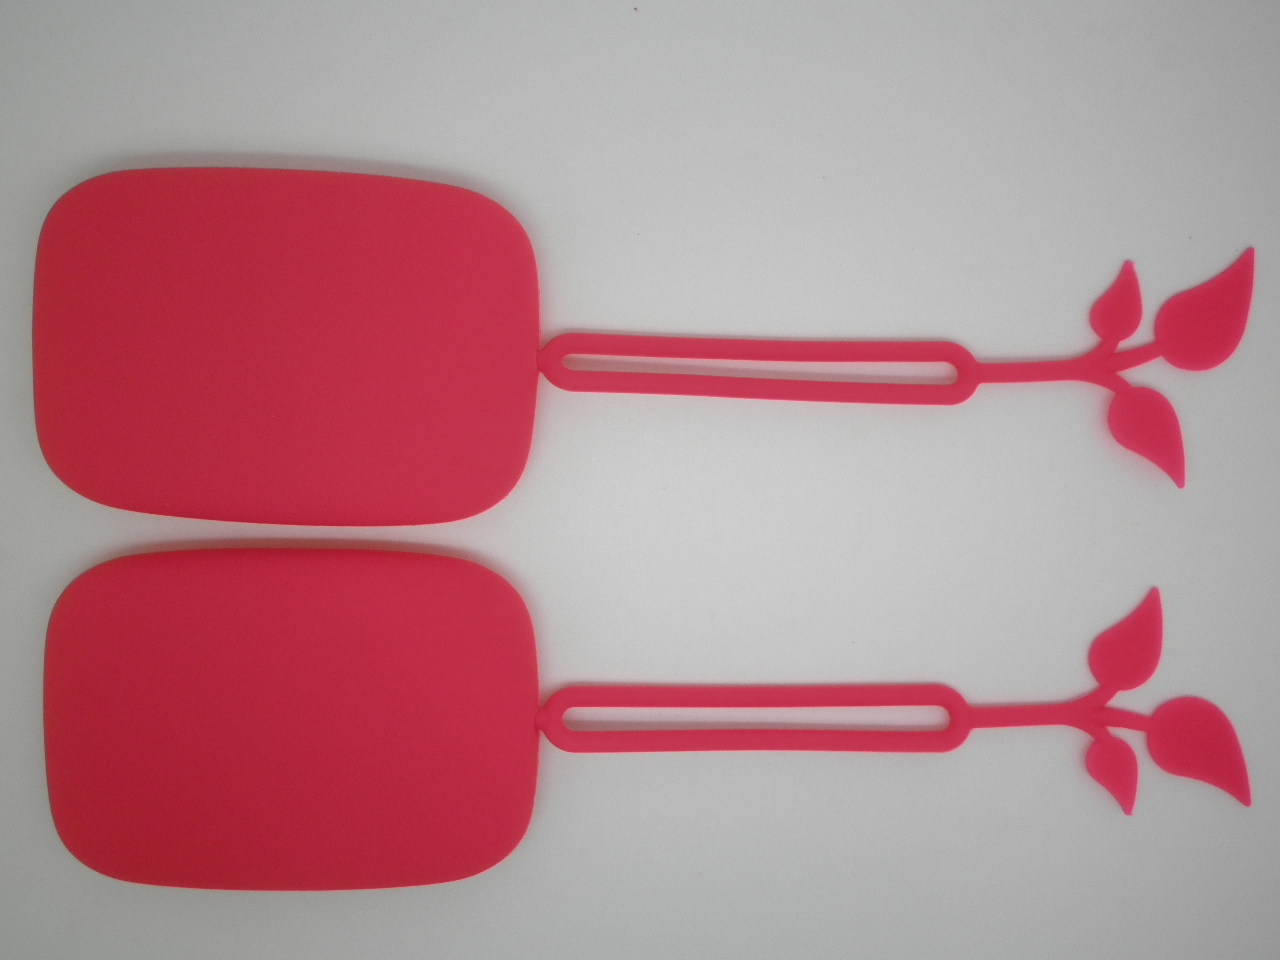 http://www.refinehksilicone.cn/data/images/product/20180417111011_878.JPG